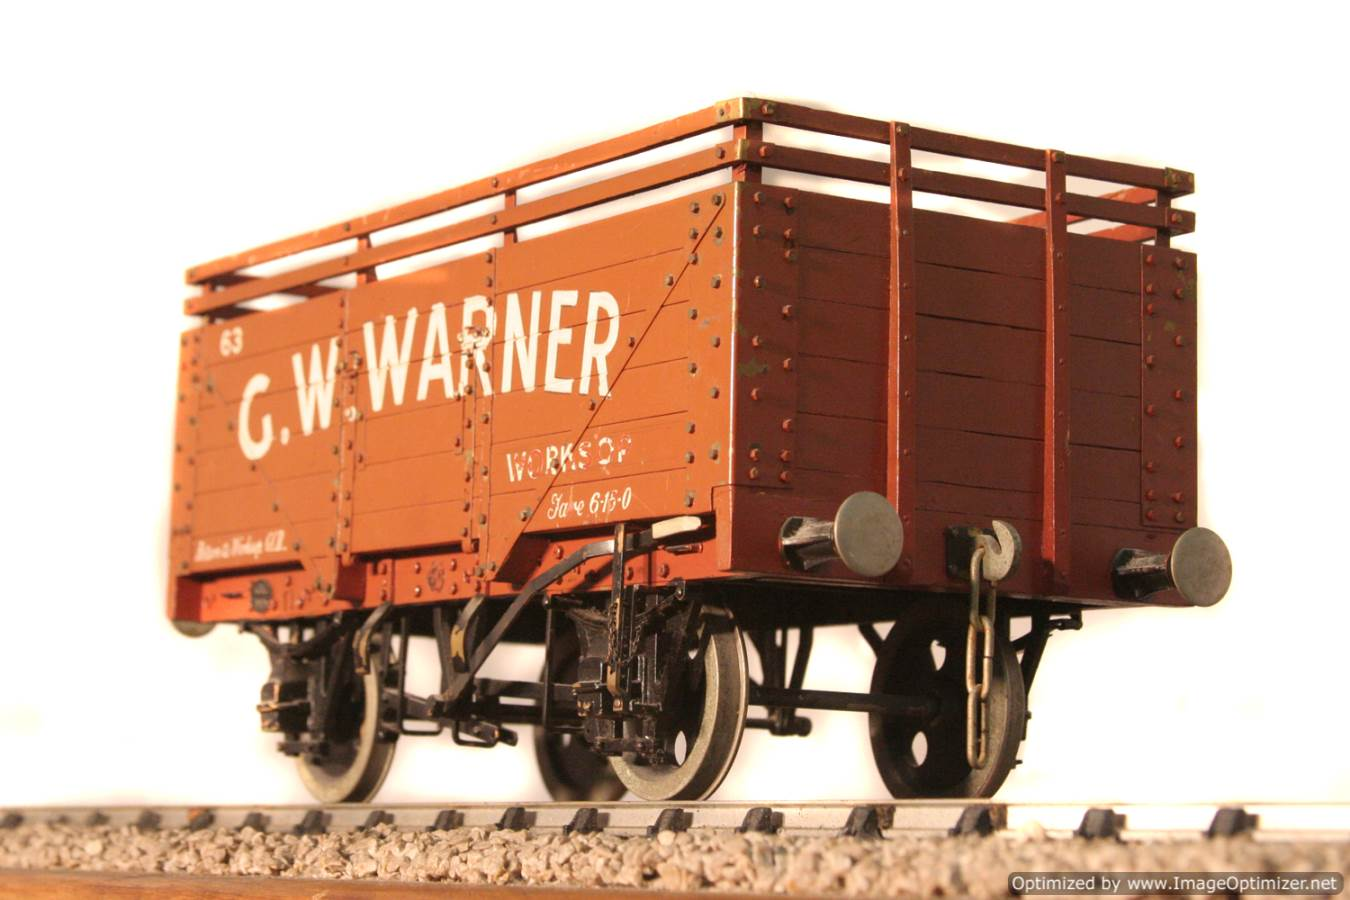 test CW Warner live steam wagon for sale 09 Optimized